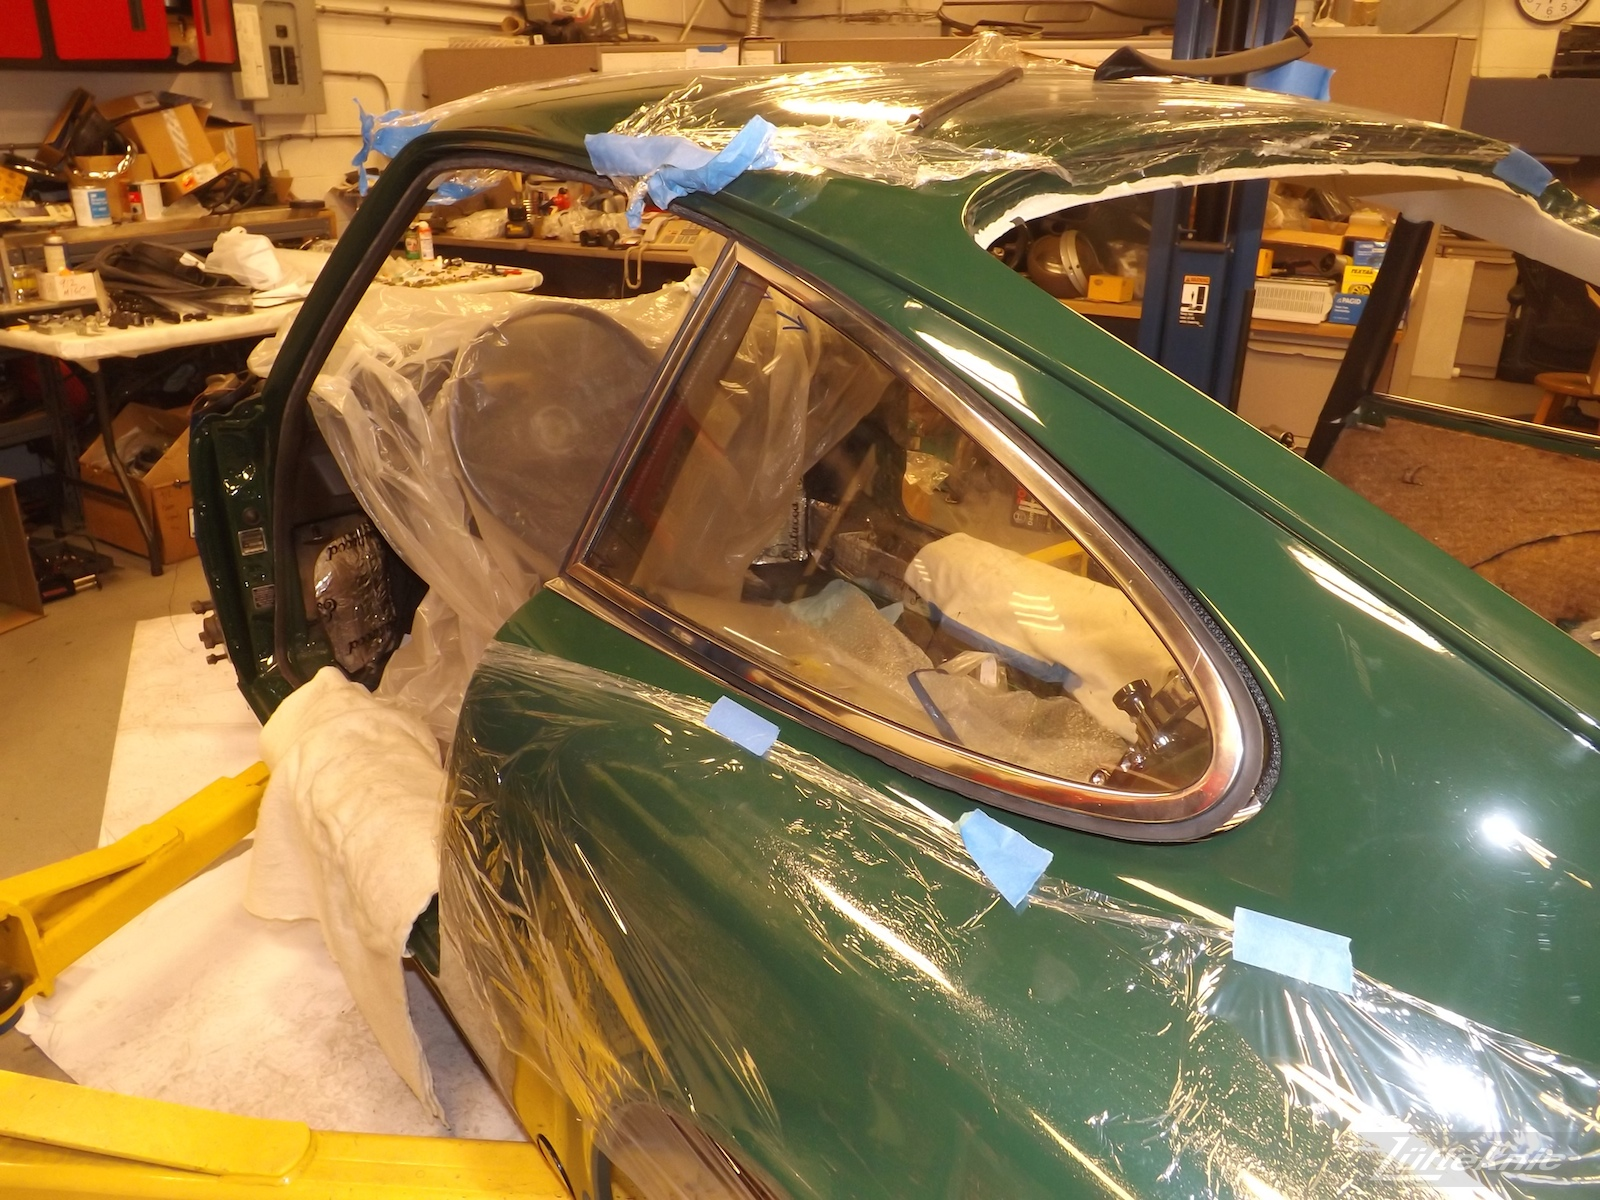 Window installation on an Irish Green Porsche 912 undergoing restoration at Lufteknic.